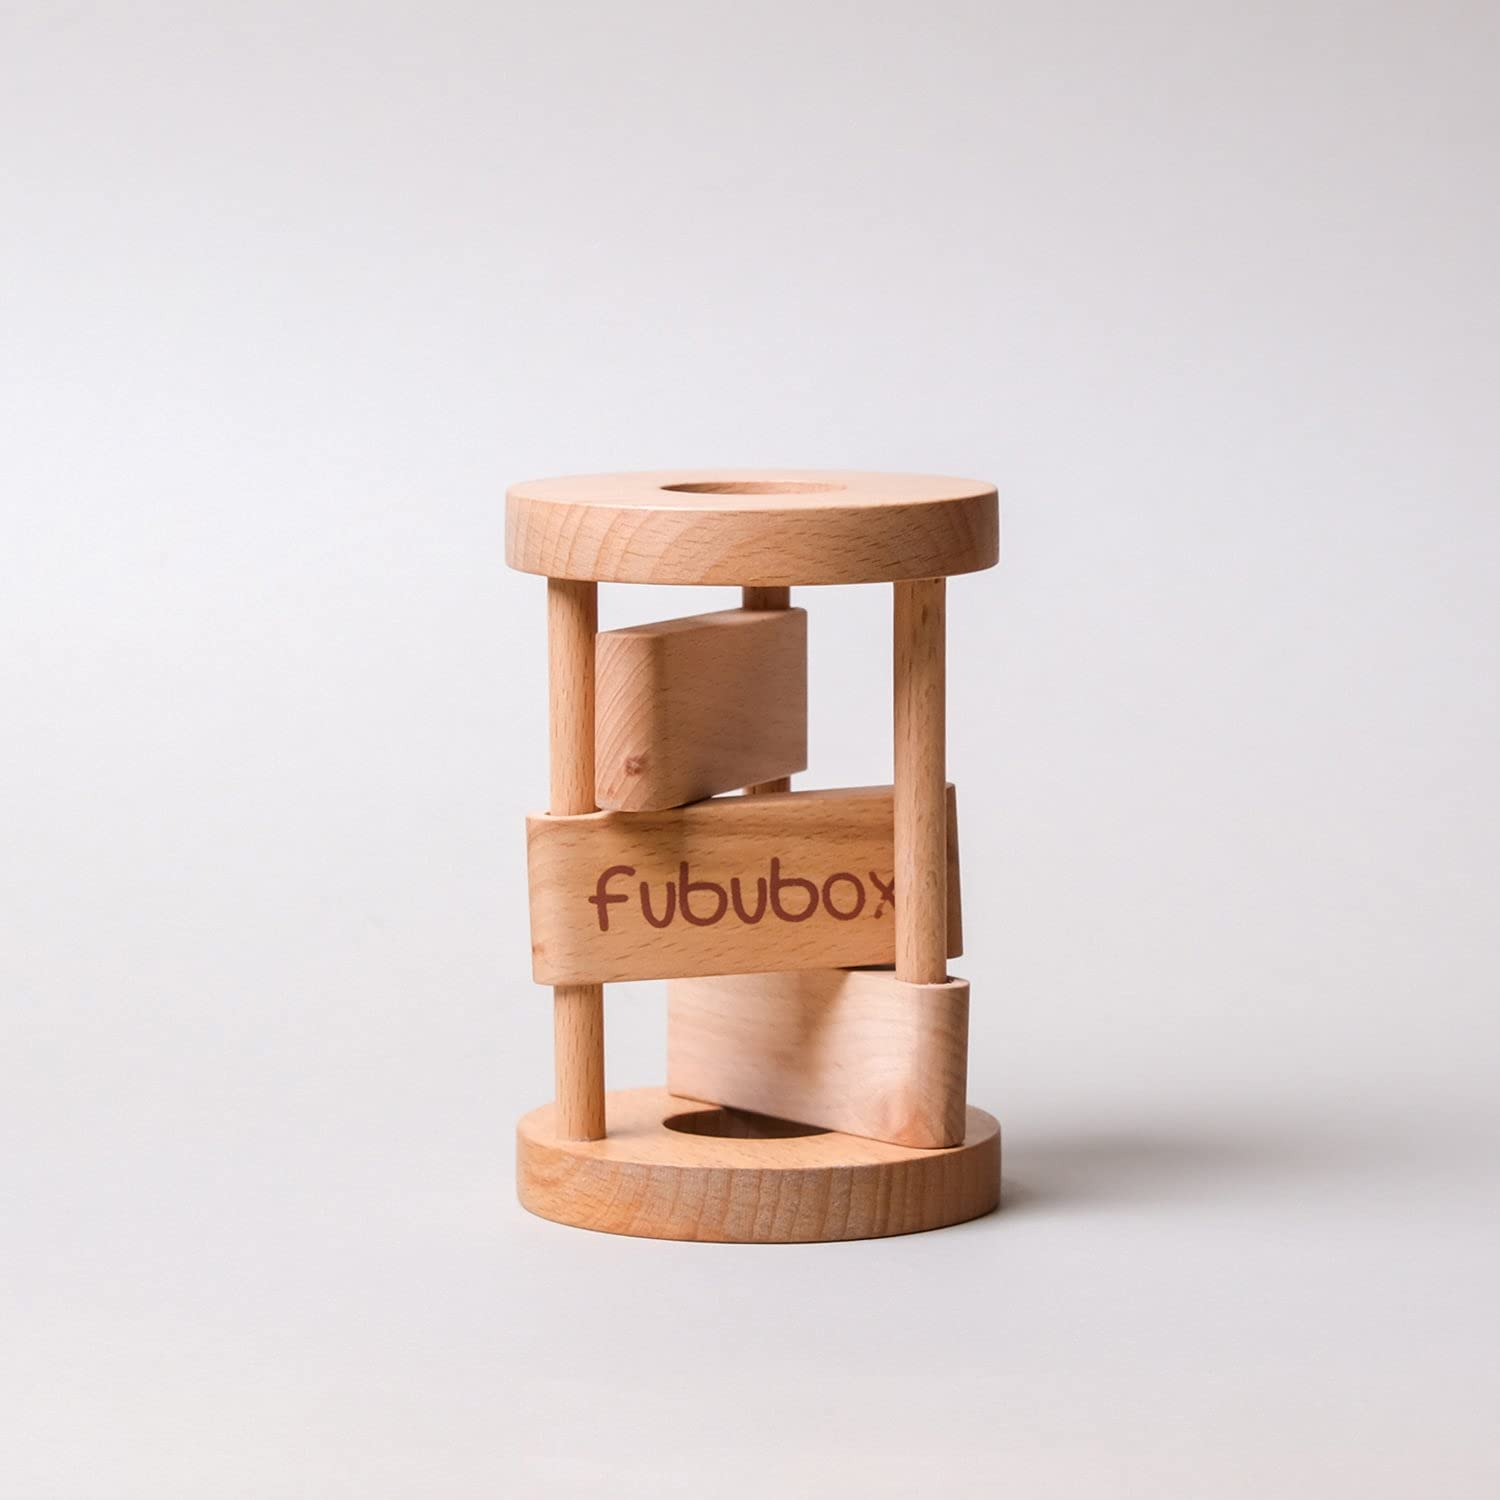 Fububox Wooden Montessori Rattle which Makes a Click clack Sound and Rolls on The Floor